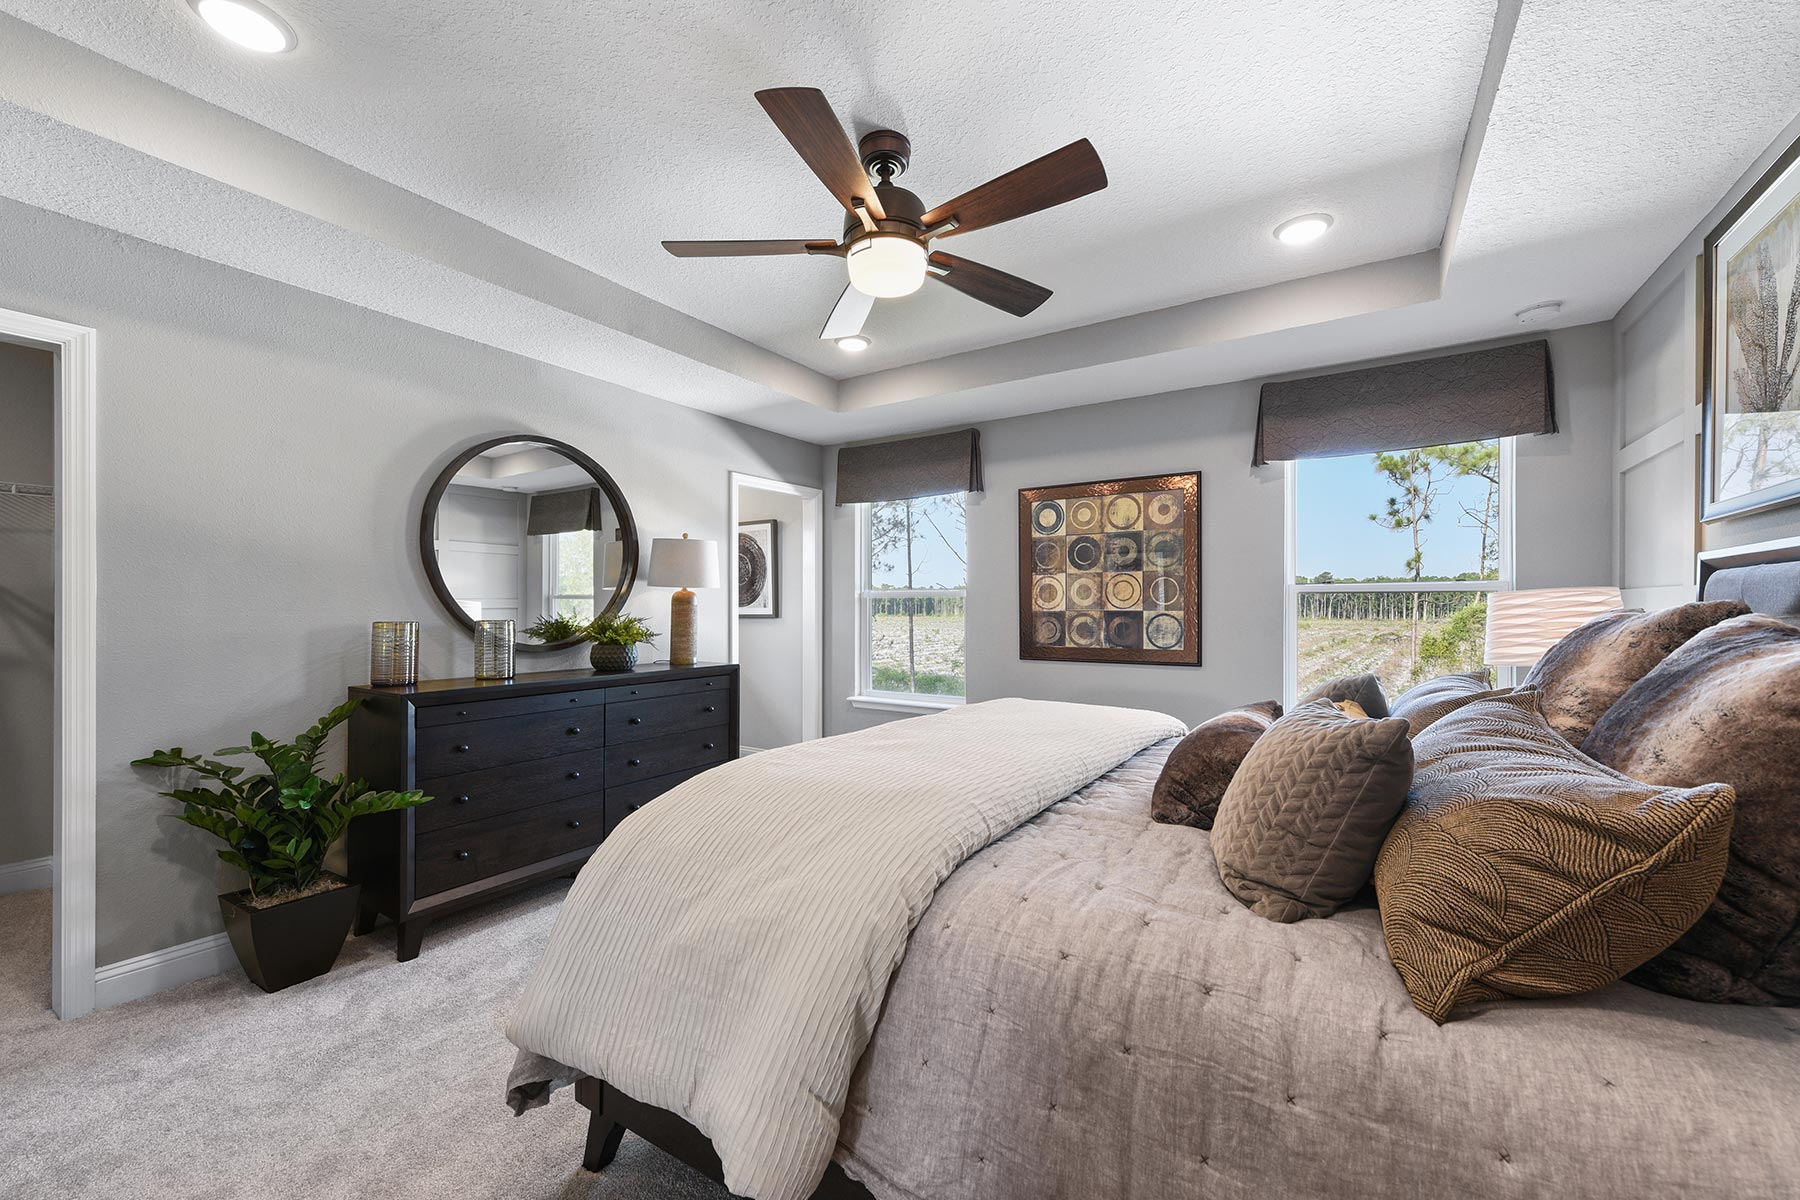 Spring Plan Bedroom at Wells Creek in Jacksonville Florida by Mattamy Homes